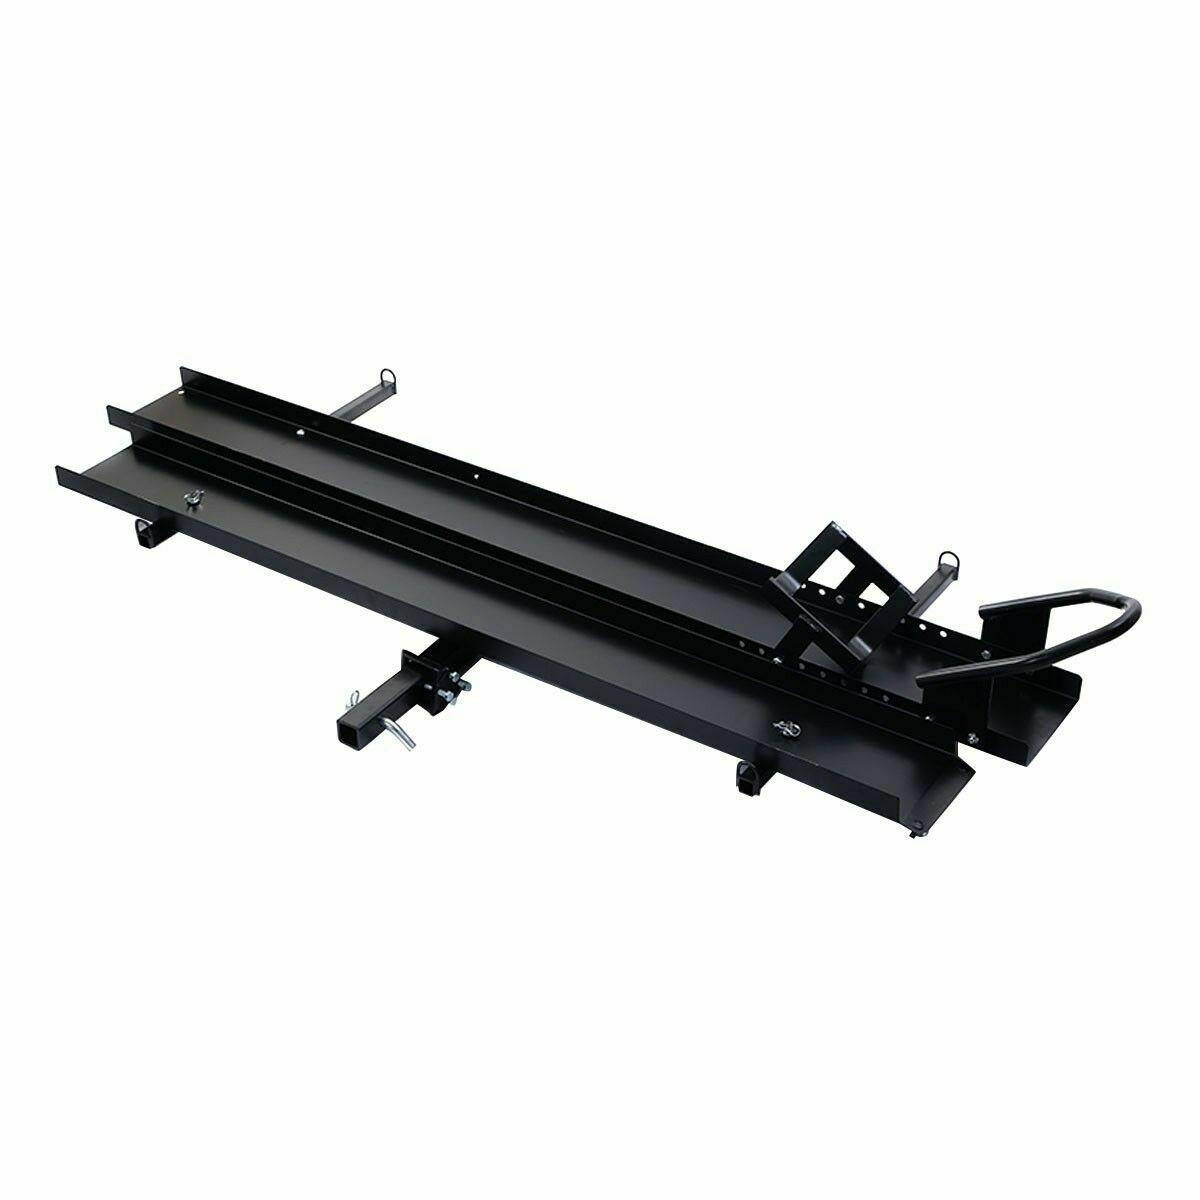 600 LBS Motorcycle Carrier Dirt Bike Rack Heavy Duty with Loading Ramp